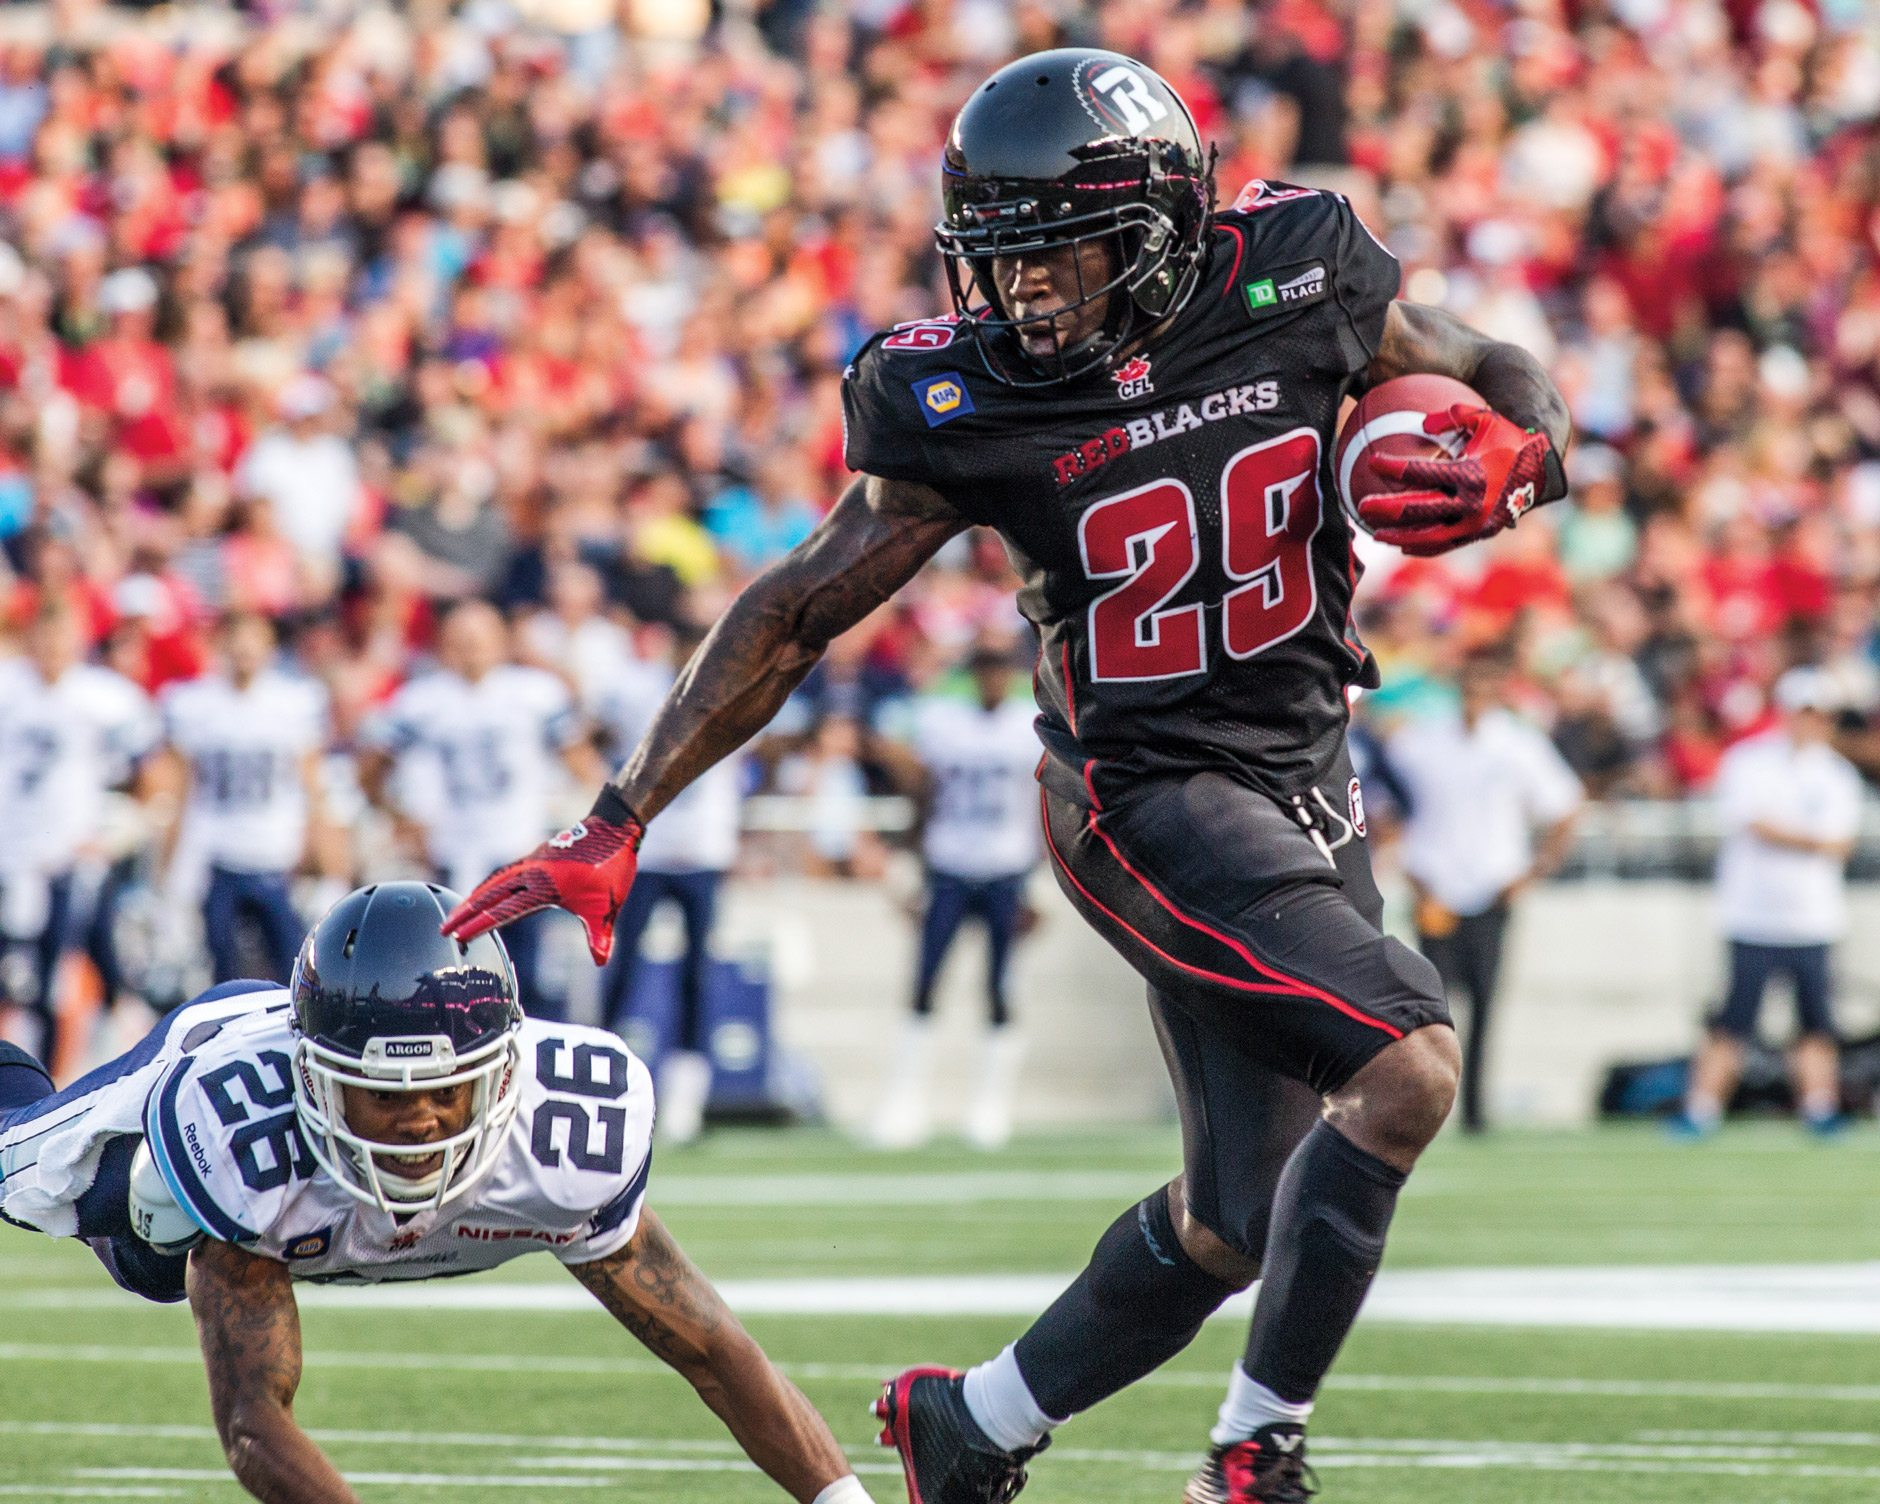 Ottawa REDBLACKS and CP Images